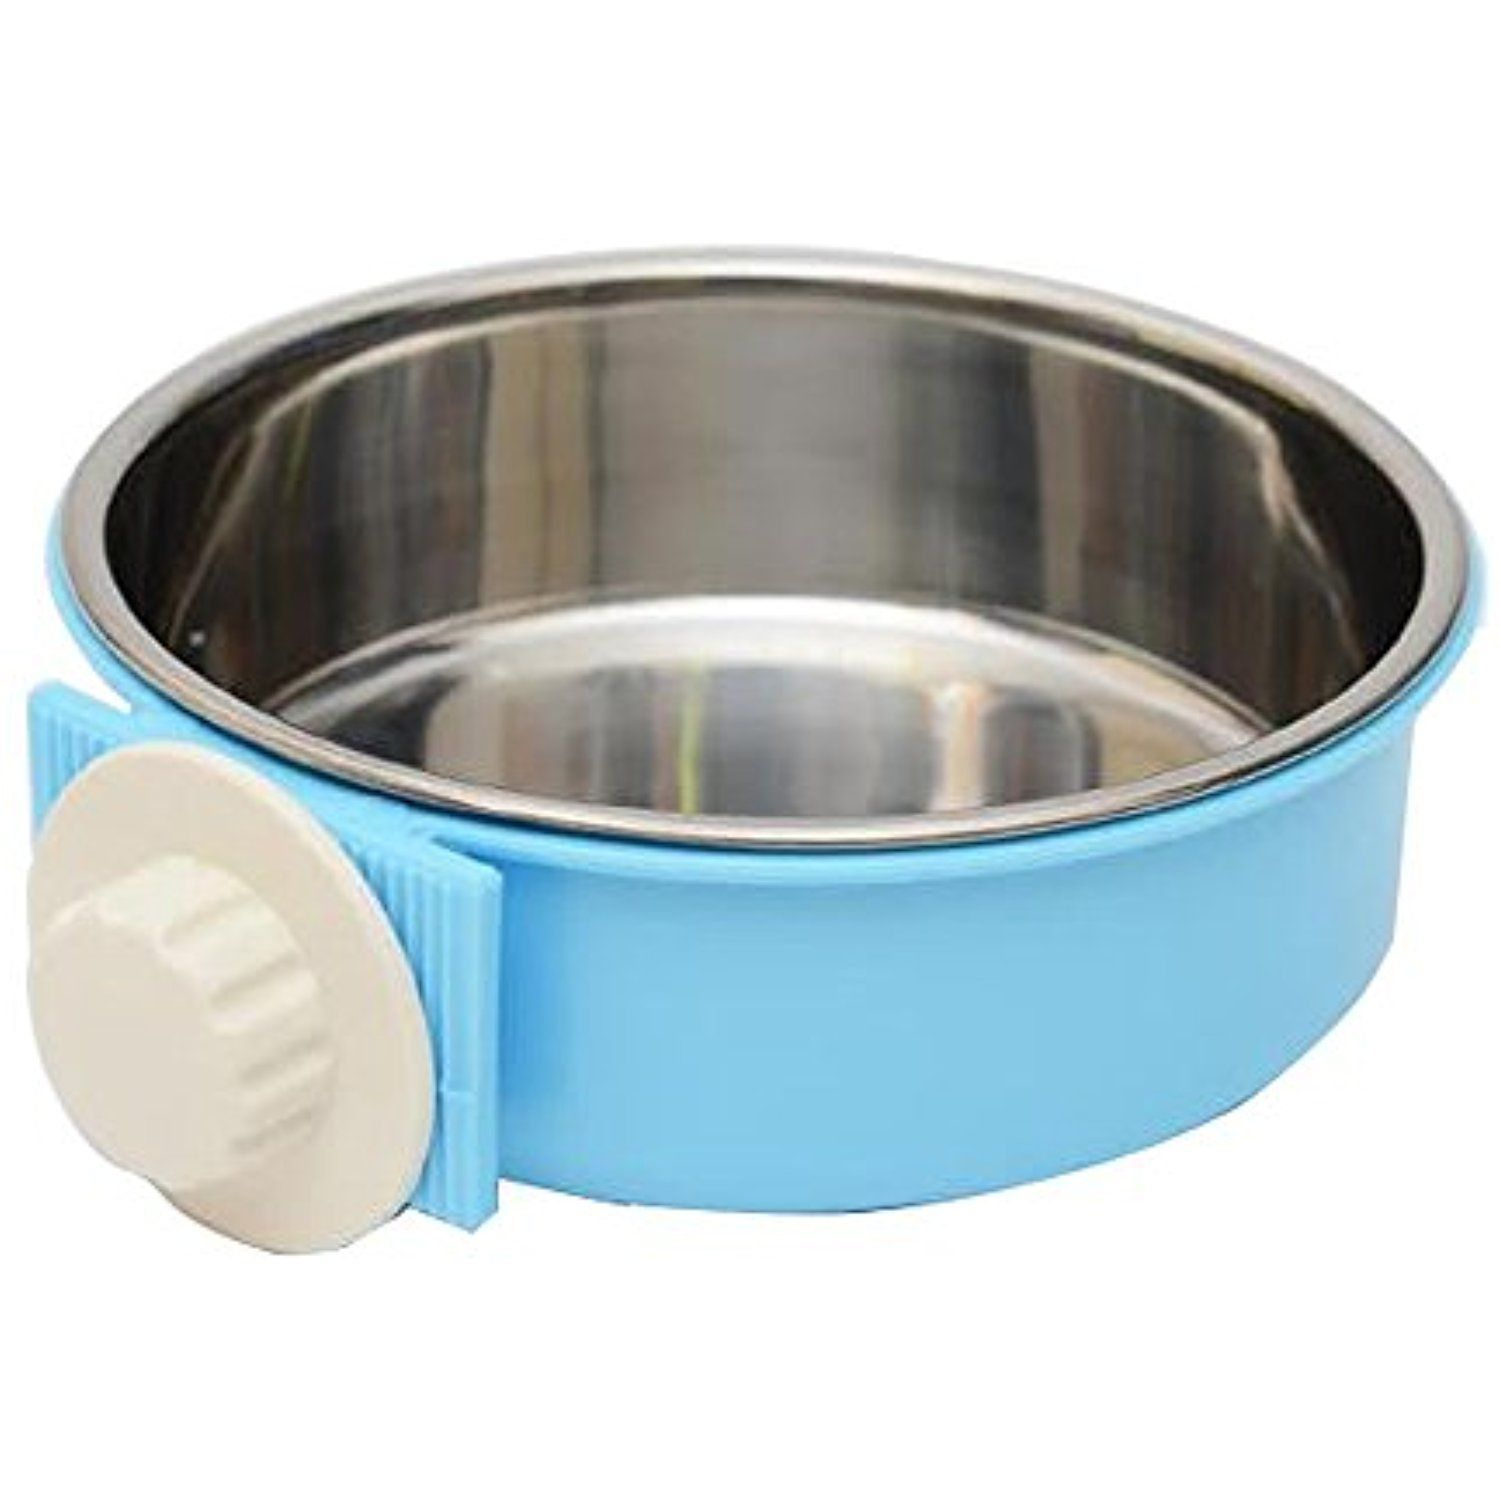 Flying Fish Pet Bowl Water Food Bowls For Dog Cat Small Animals Hanging Removable Cage Feeding Stations Stain Stainless Steel Dog Bowls Dog Bowls Dog Feeding